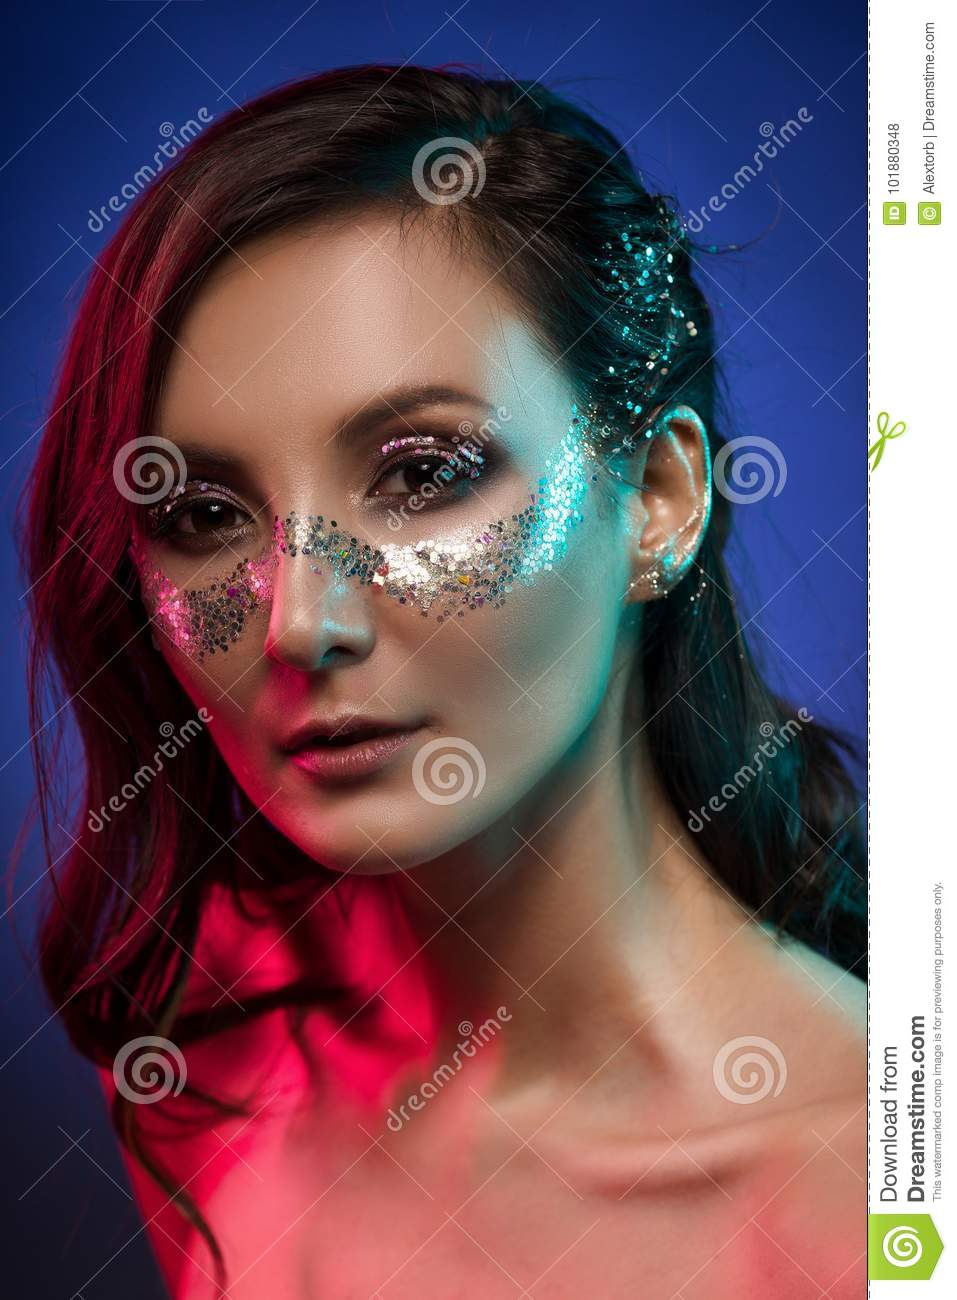 Portrait Of Gorgeous Glam Girl, Artistic Glittering Make-Up On A Stock Photo - Image -1402